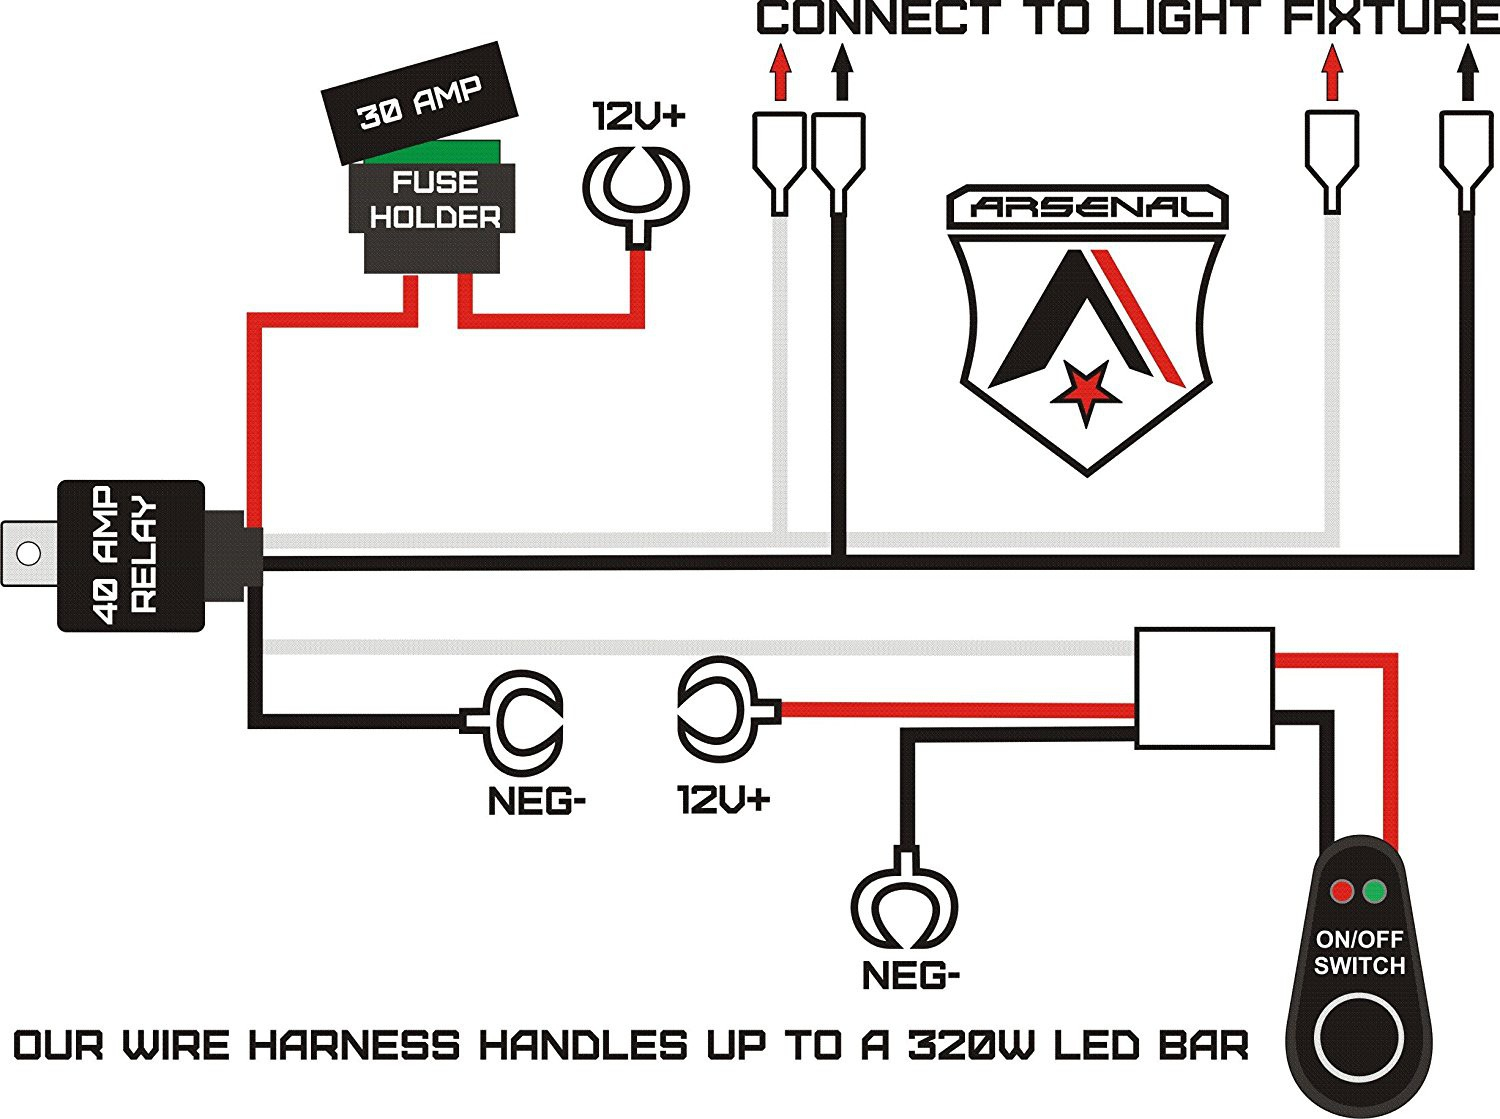 Led Light Wiring Diagram - Allove - Led Light Wiring Diagram